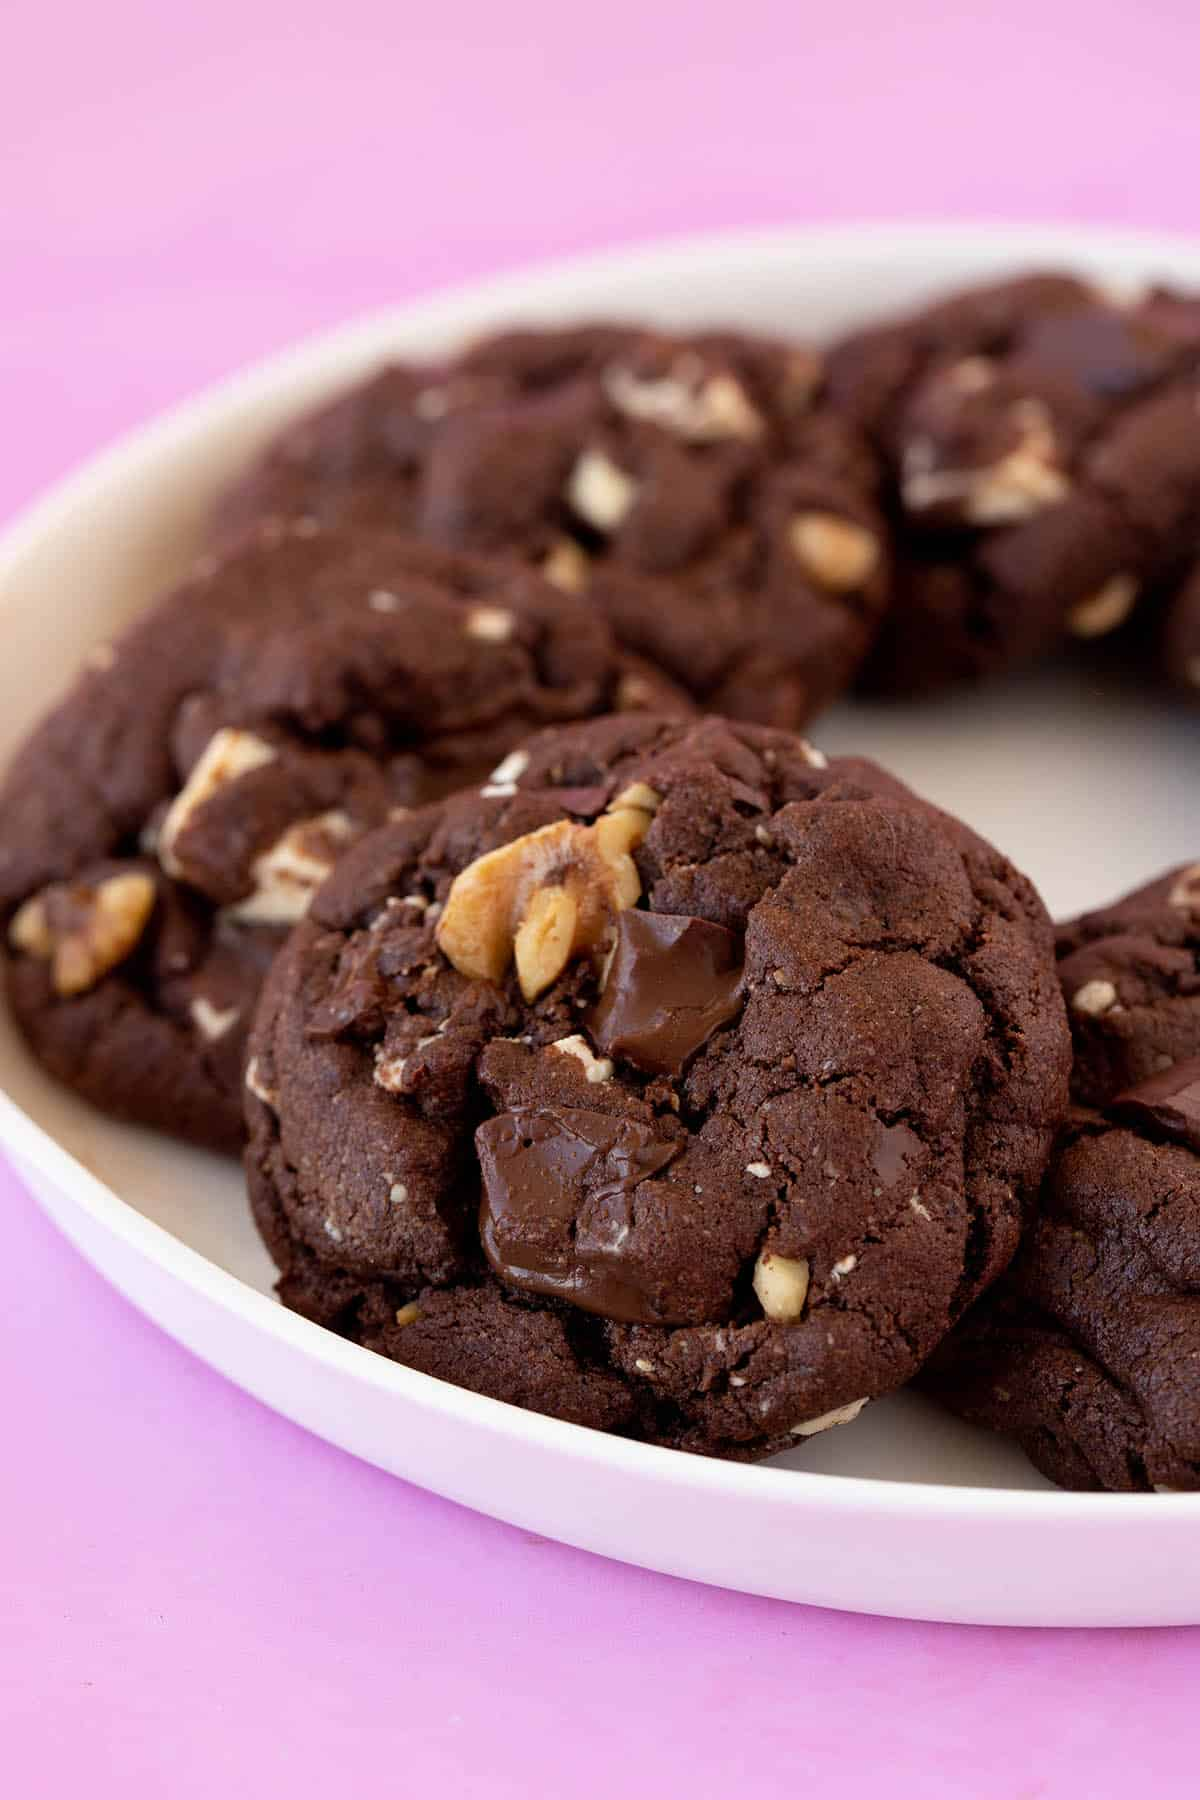 Homemade chocolate cookies on a white plate